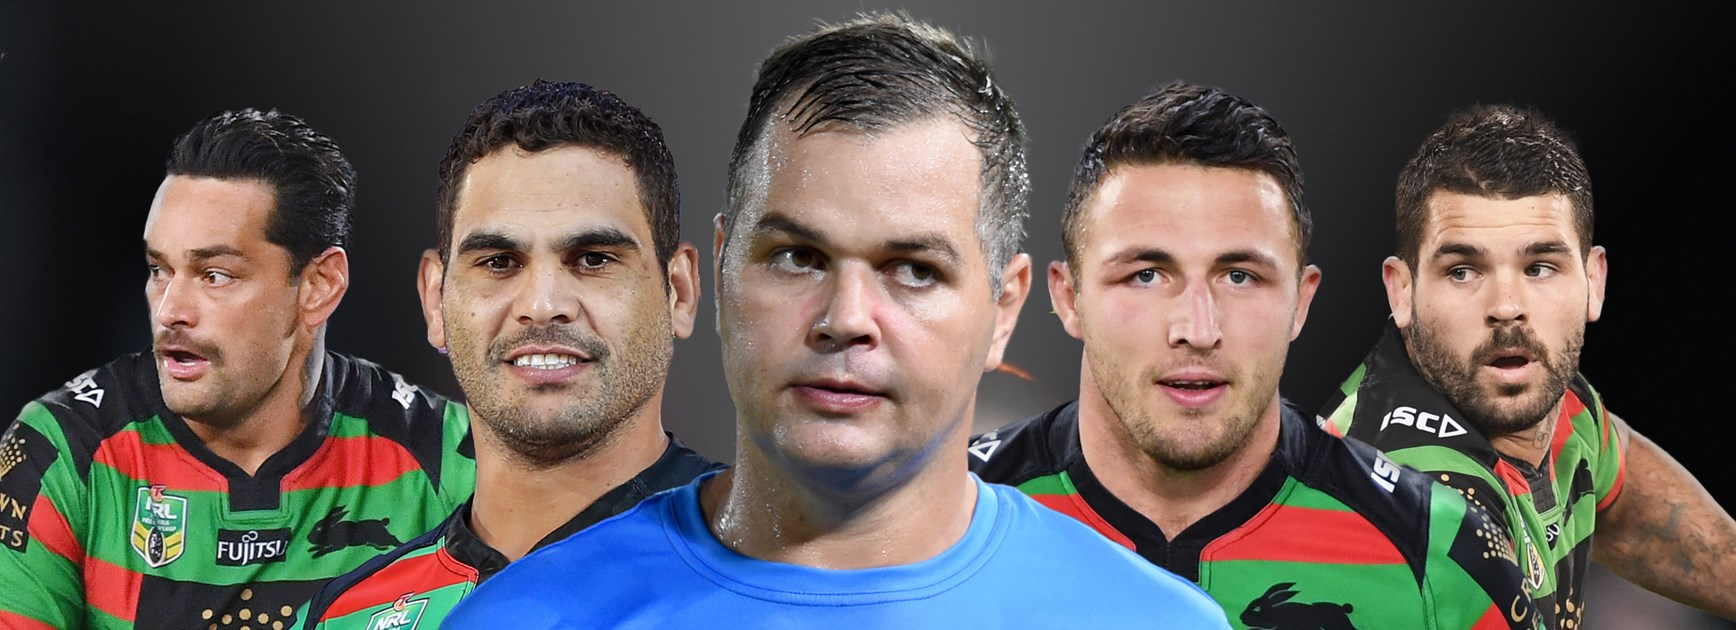 South Sydney Rabbitohs: 2018 NRL season preview